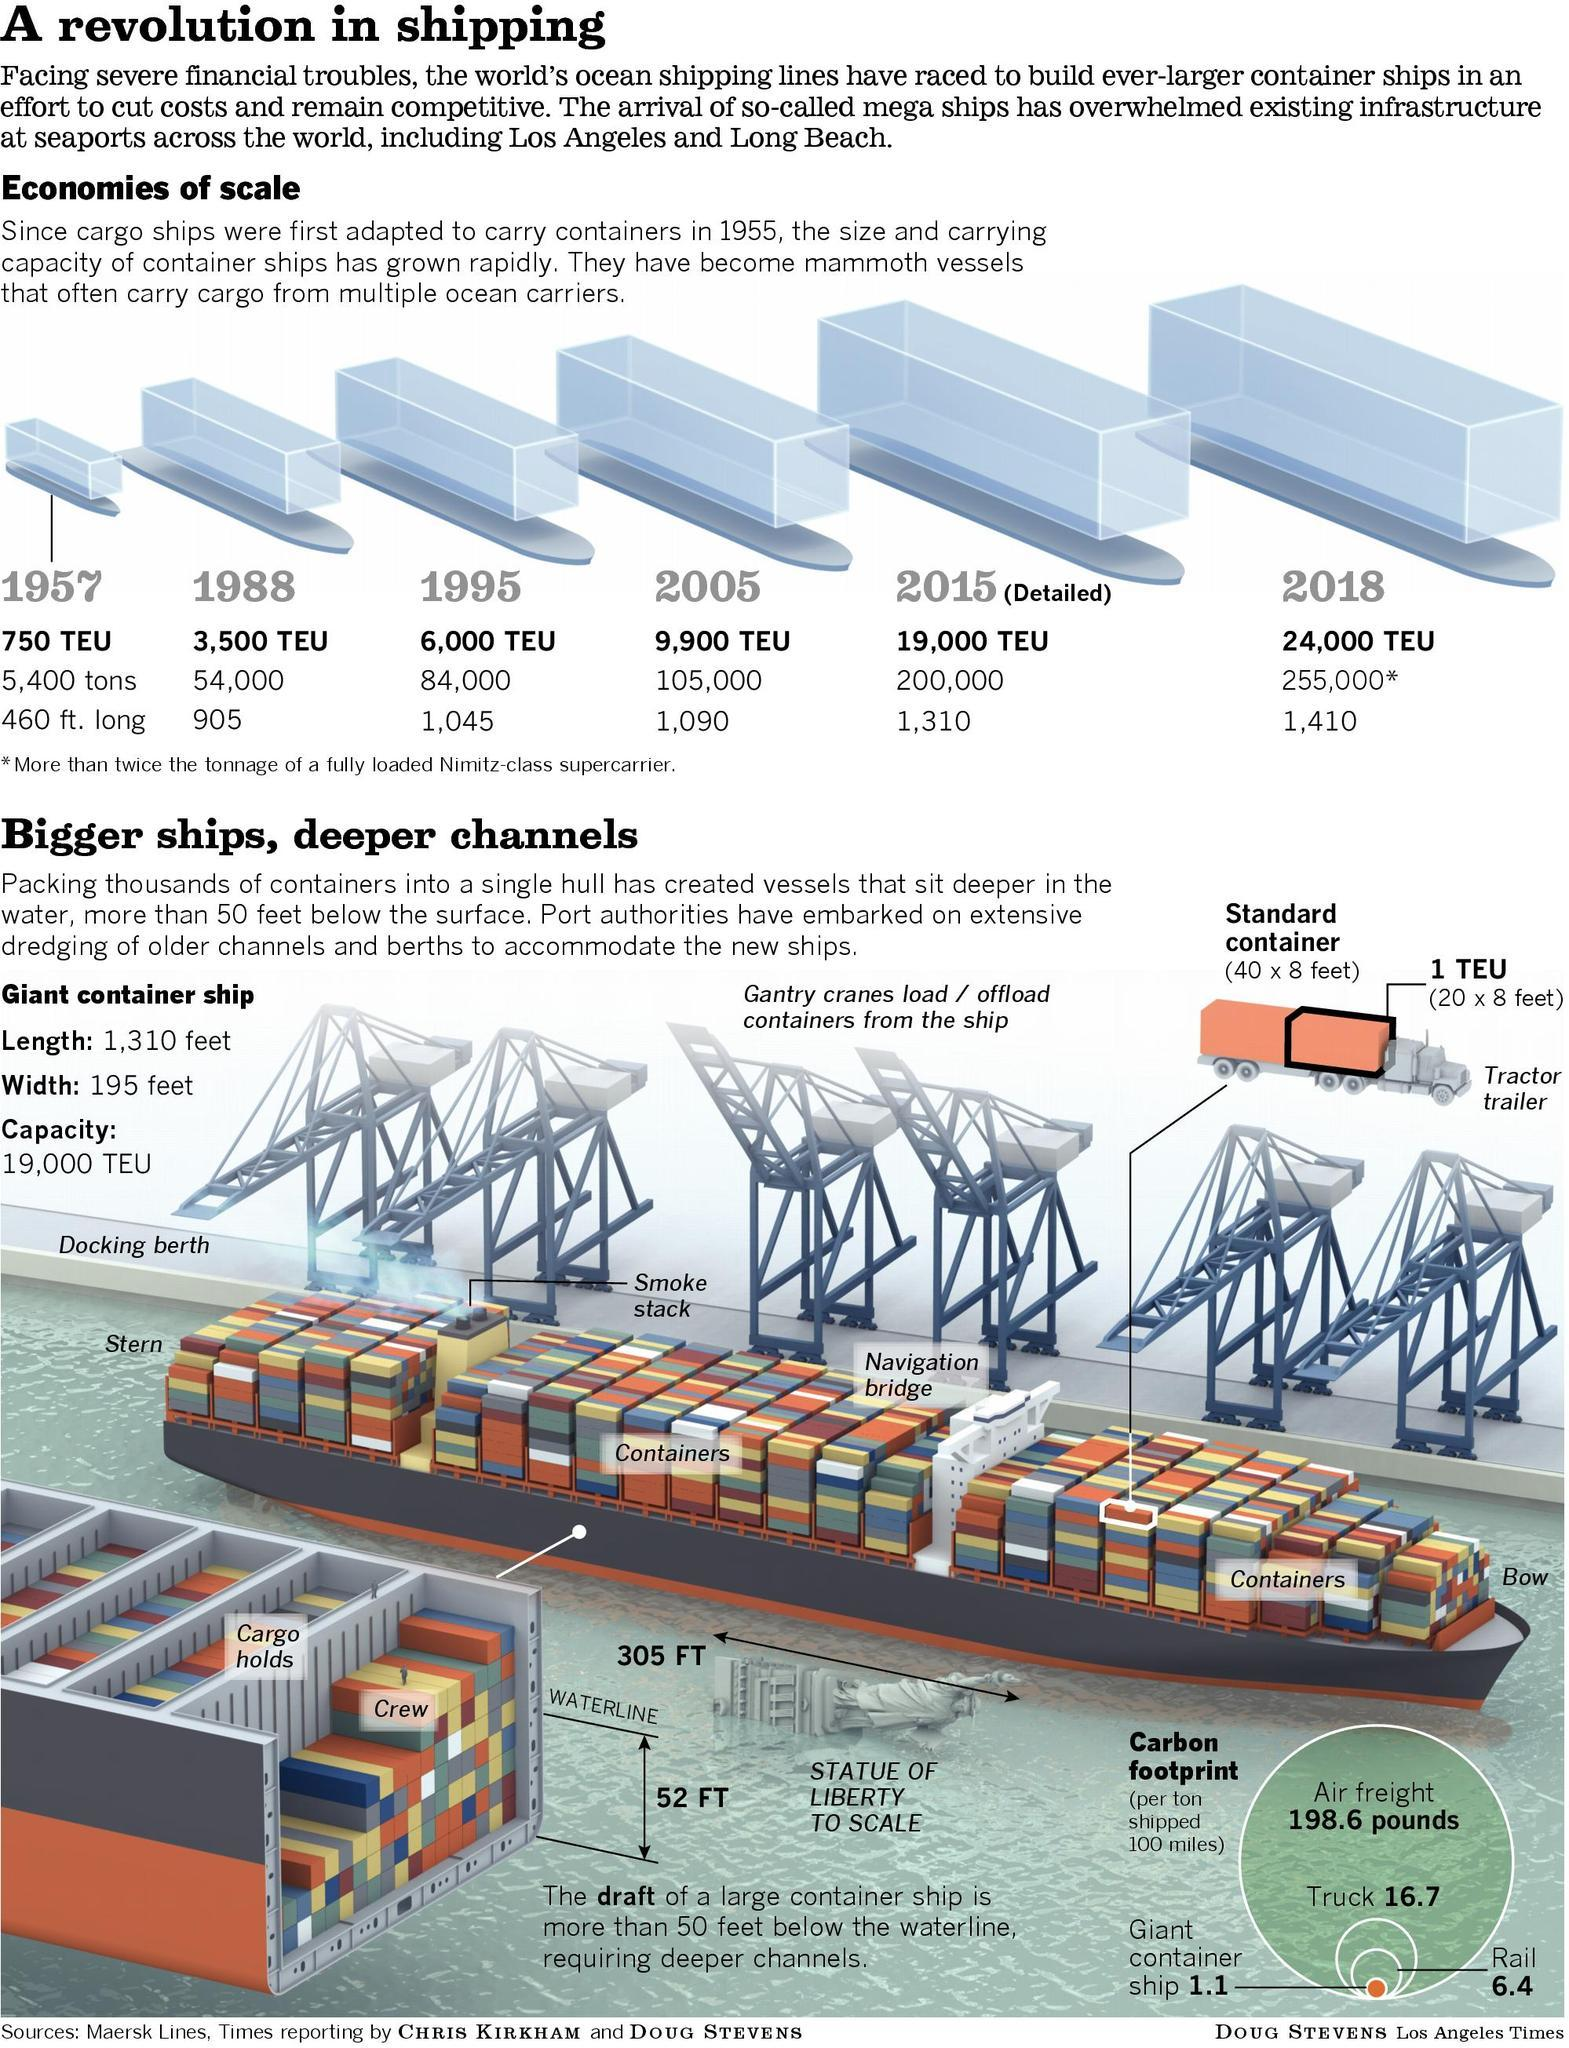 Graphic explaining how the Ports of Los Angeles and Long Beach will